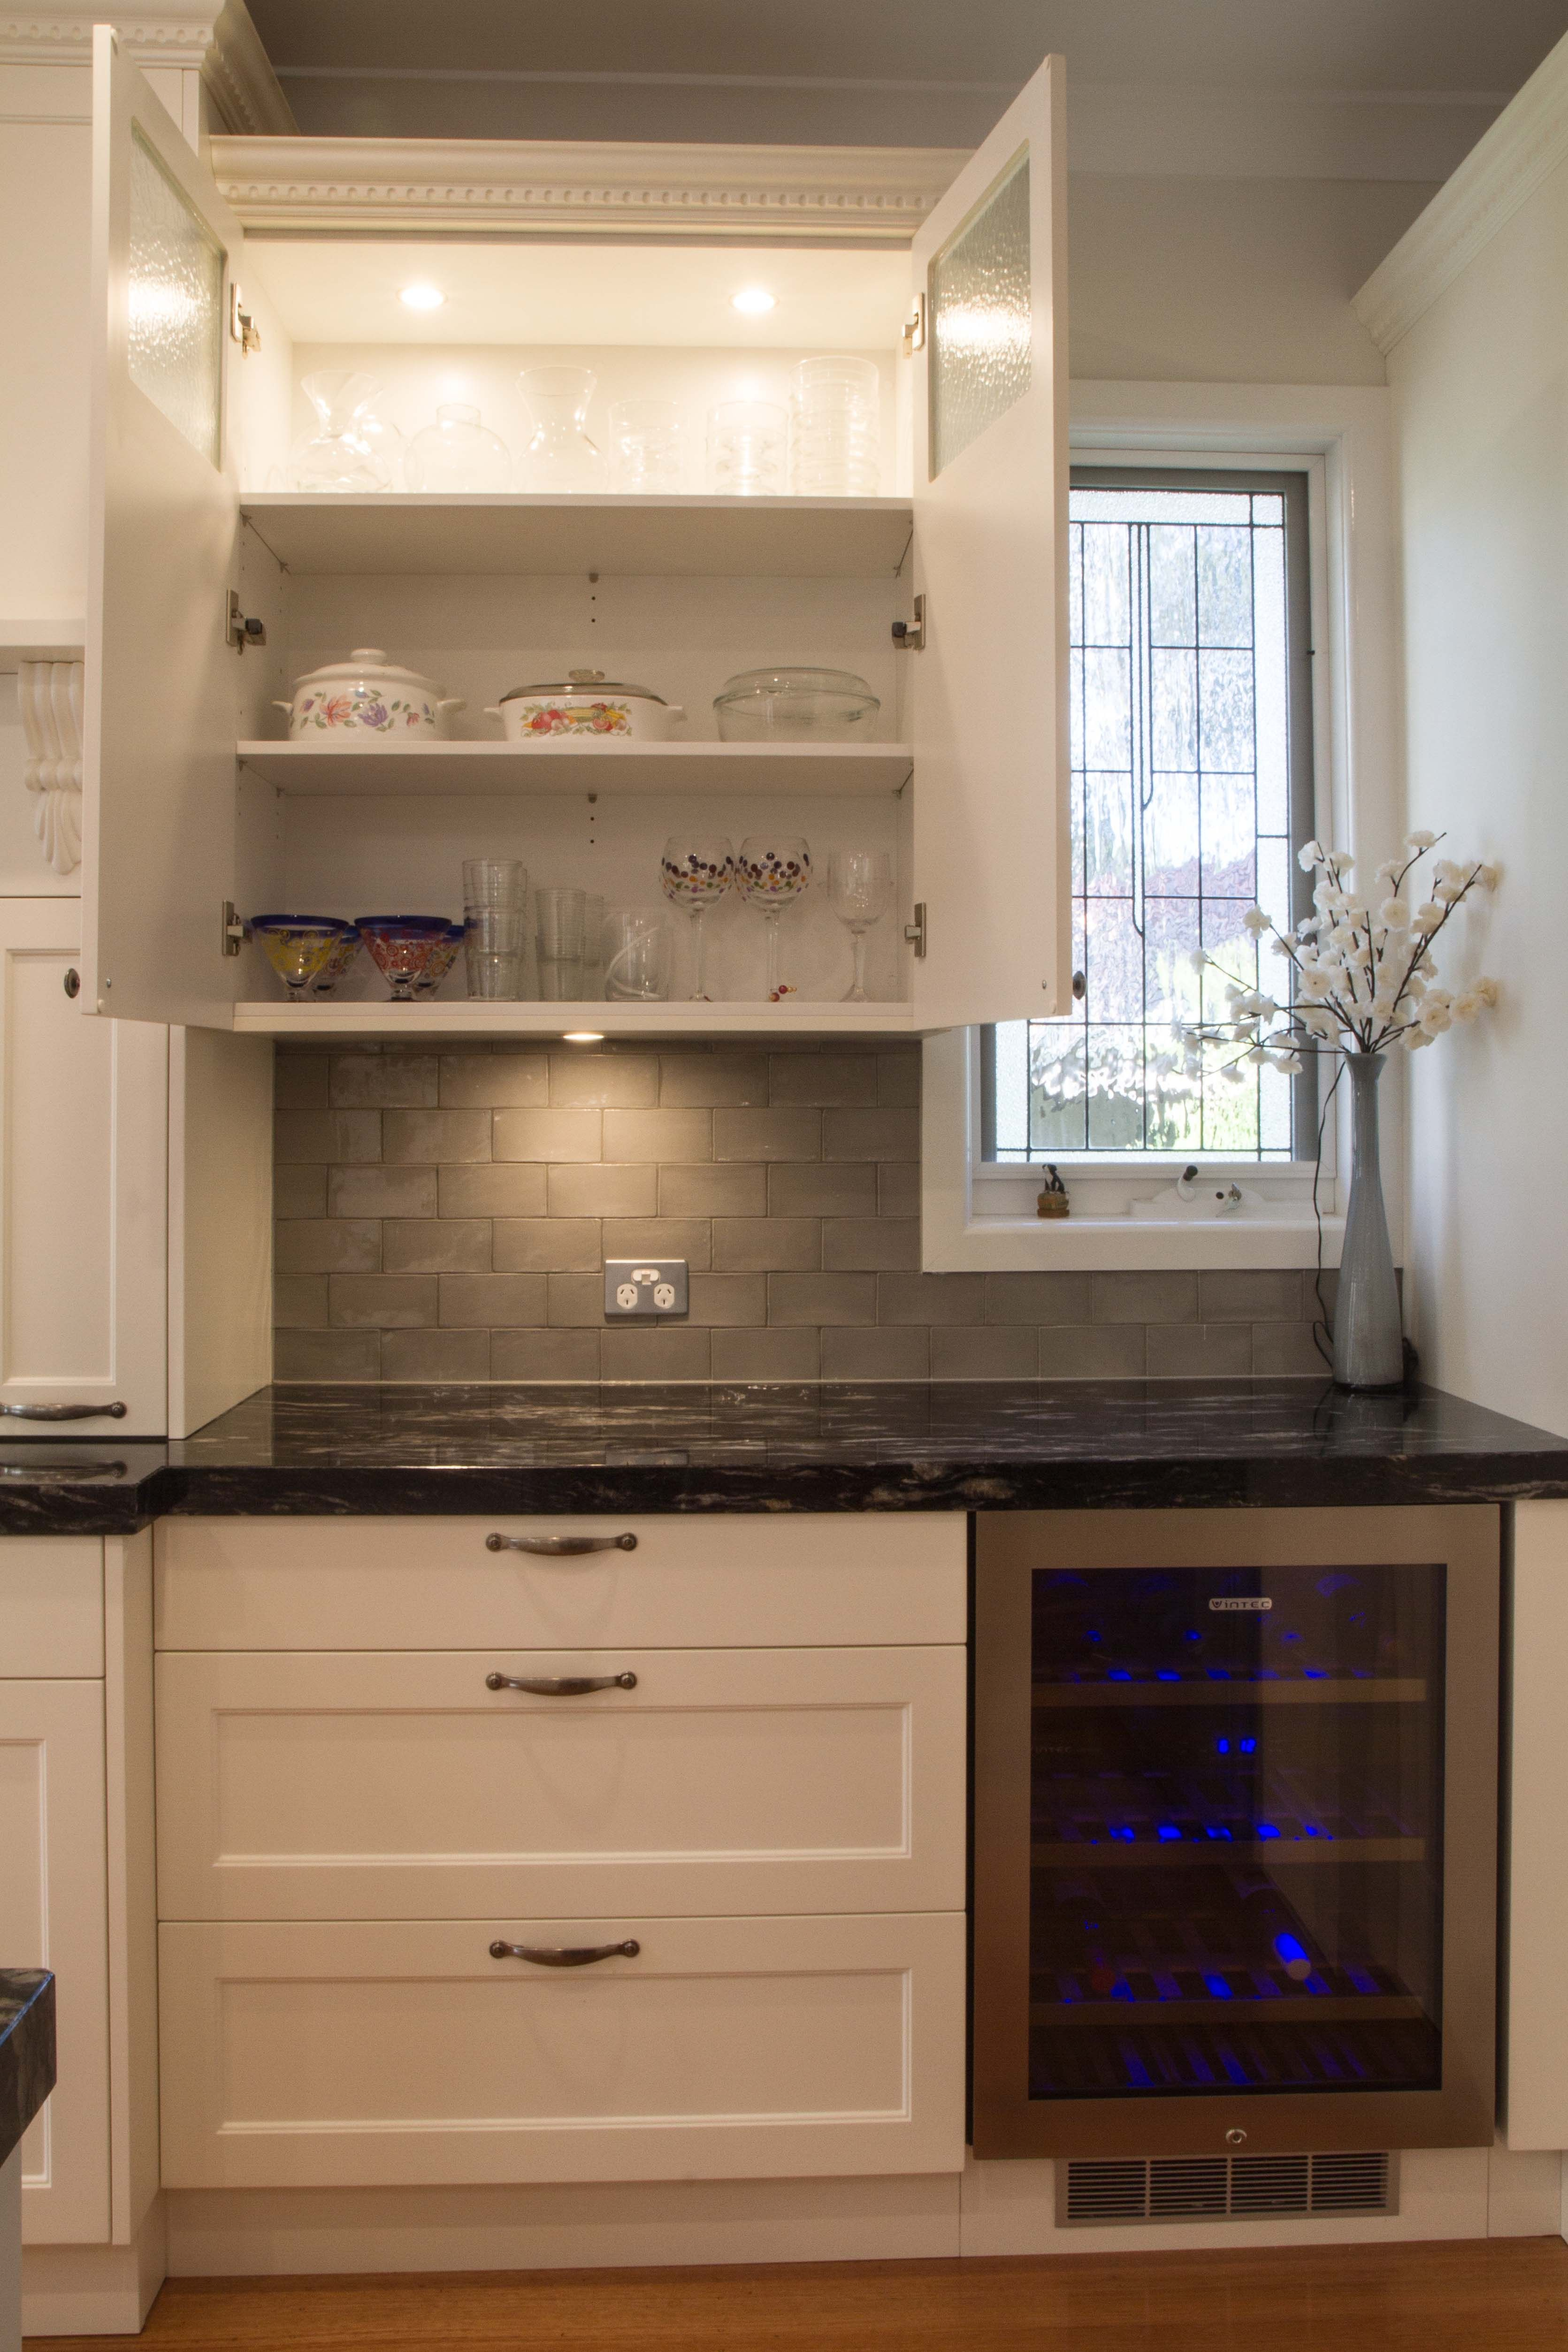 Kitchen Overhead Cabinets Design | http://garecscleaningsystems.net ...